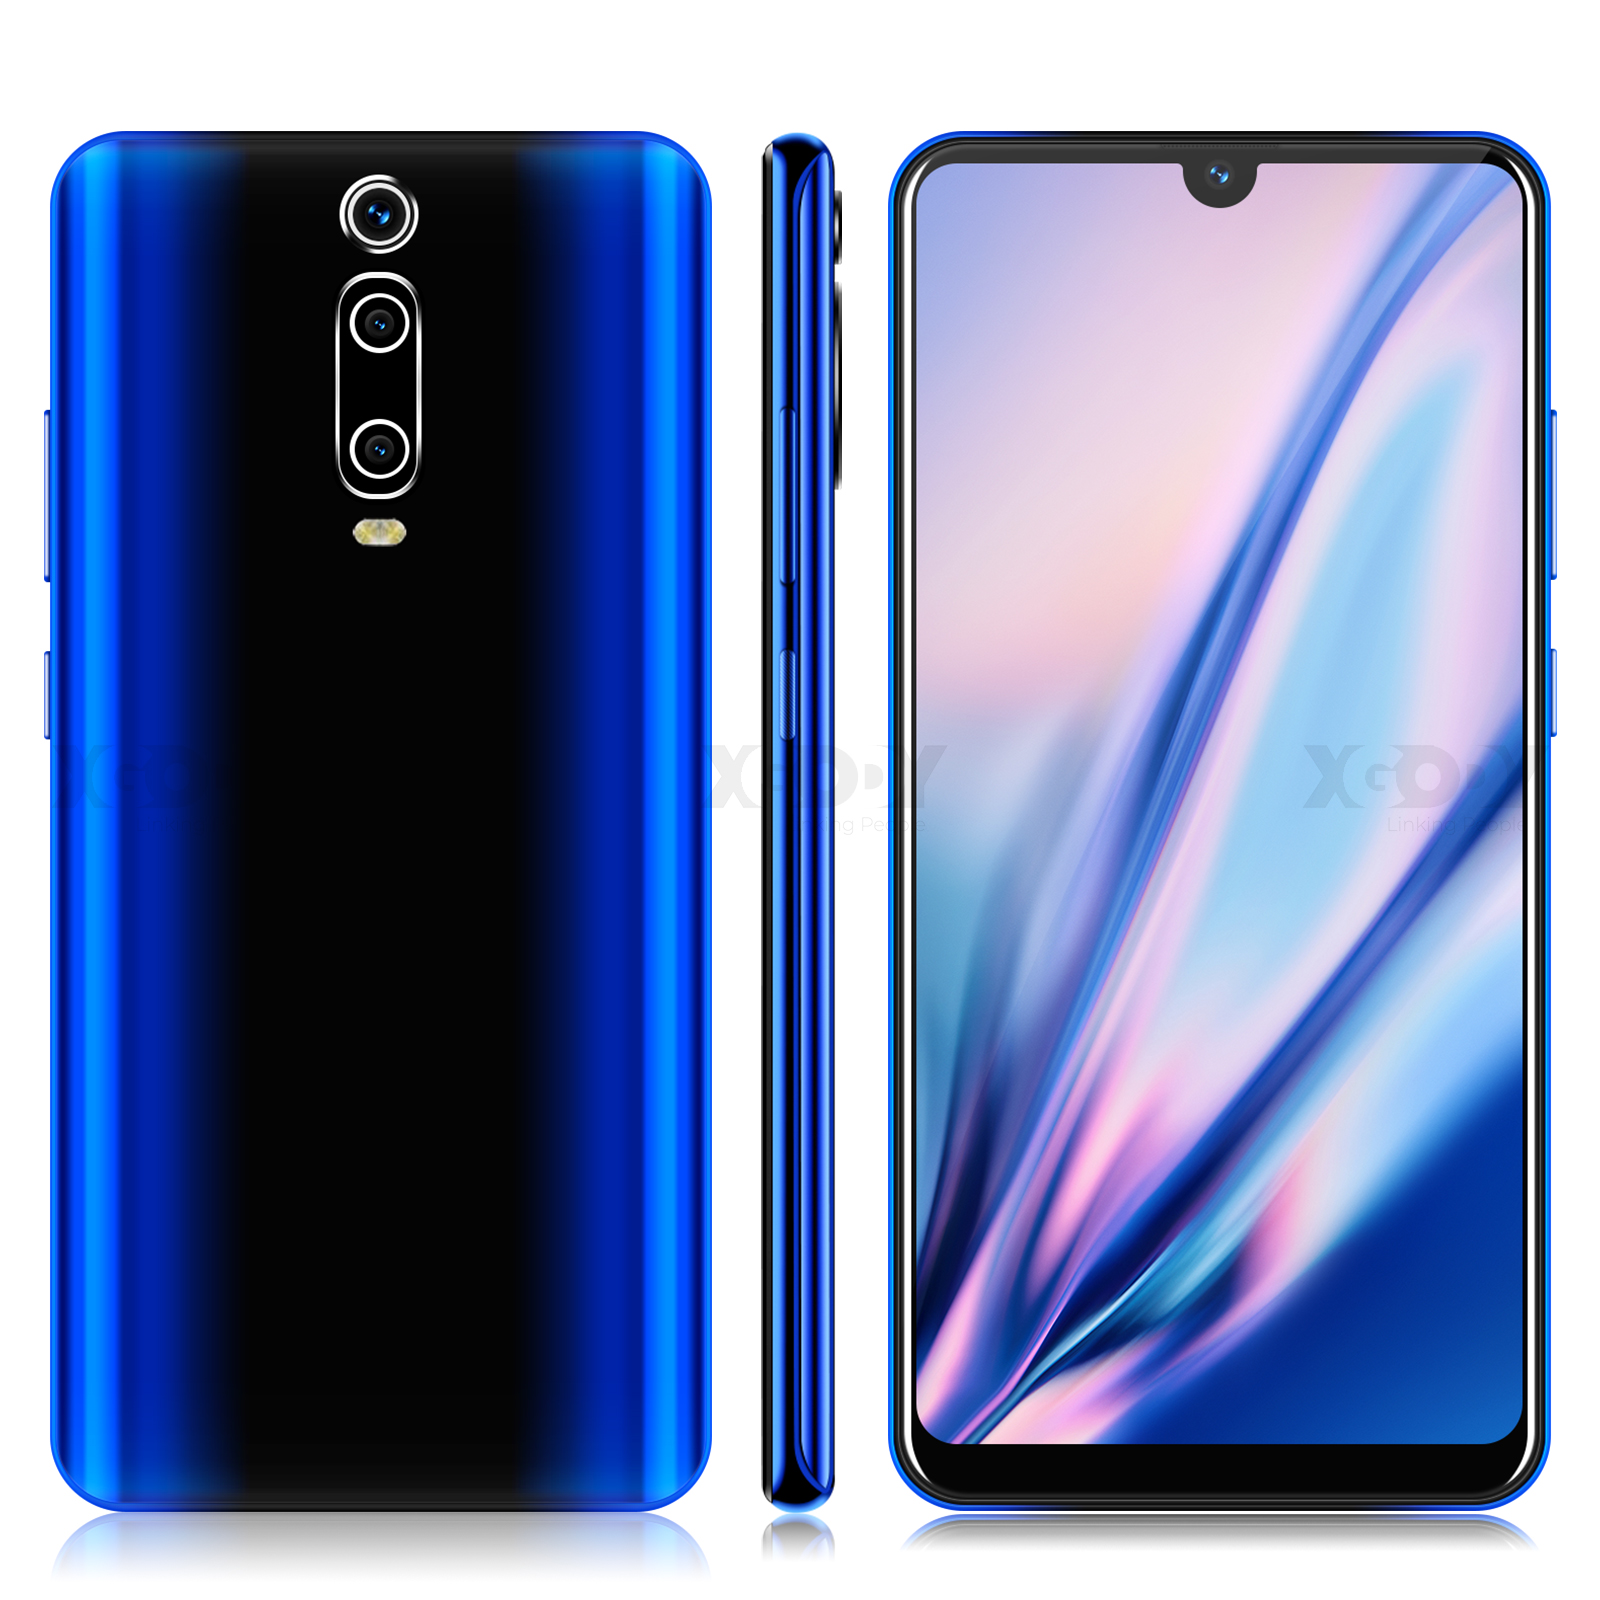 XGODY 6.26'' Waterdrop Mobile Phone 9T Android 9.0 1GB 4GB Full Screen <font><b>Smartphone</b></font> <font><b>MTK6580</b></font> <font><b>Quad</b></font> <font><b>Core</b></font> 2800mAh 5MP WiFi Cell Phones image